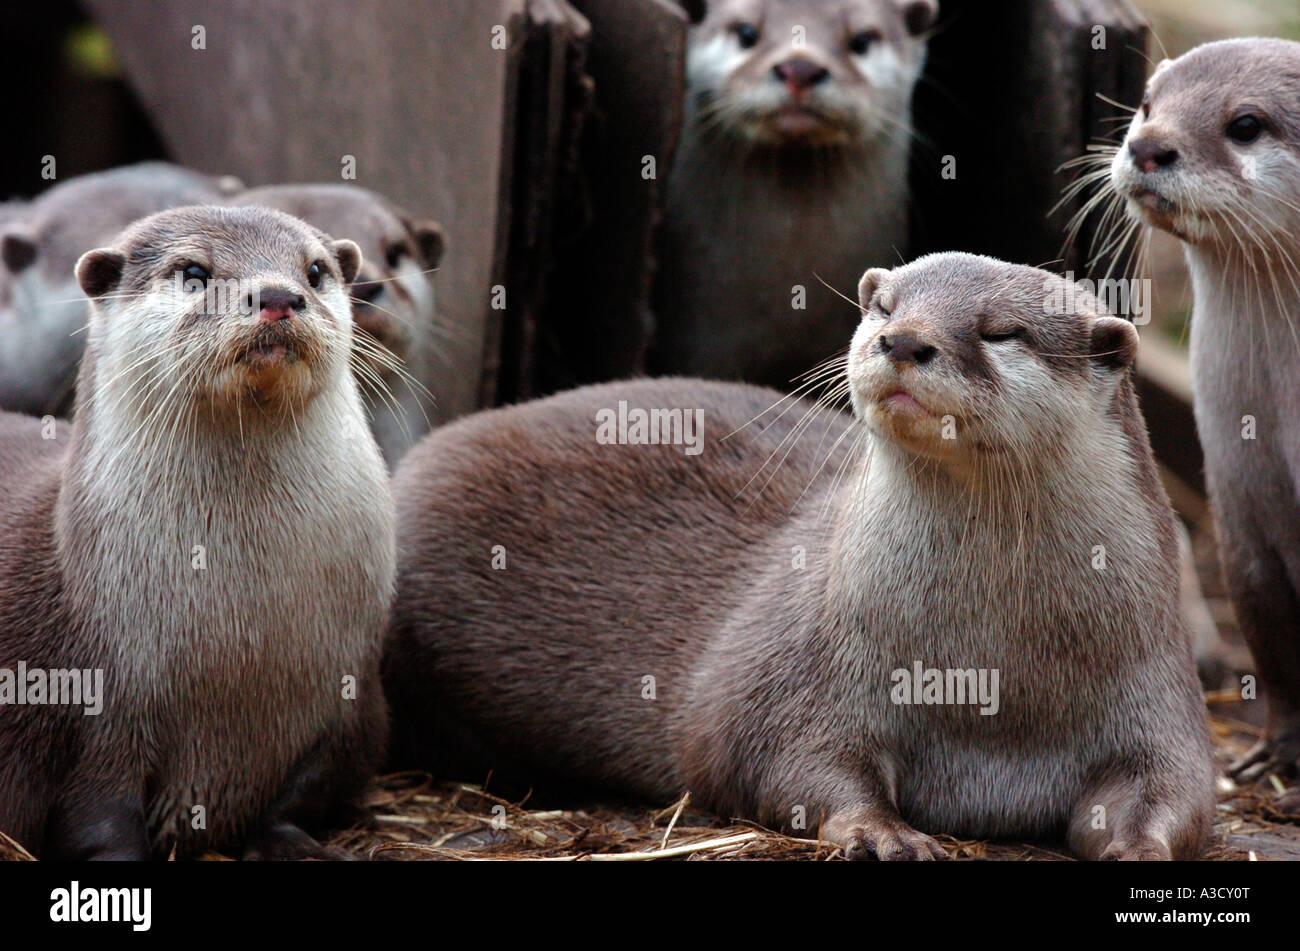 European Otters pictured at New Forest Wildlife Centre in Hampshire, UK Stock Photo